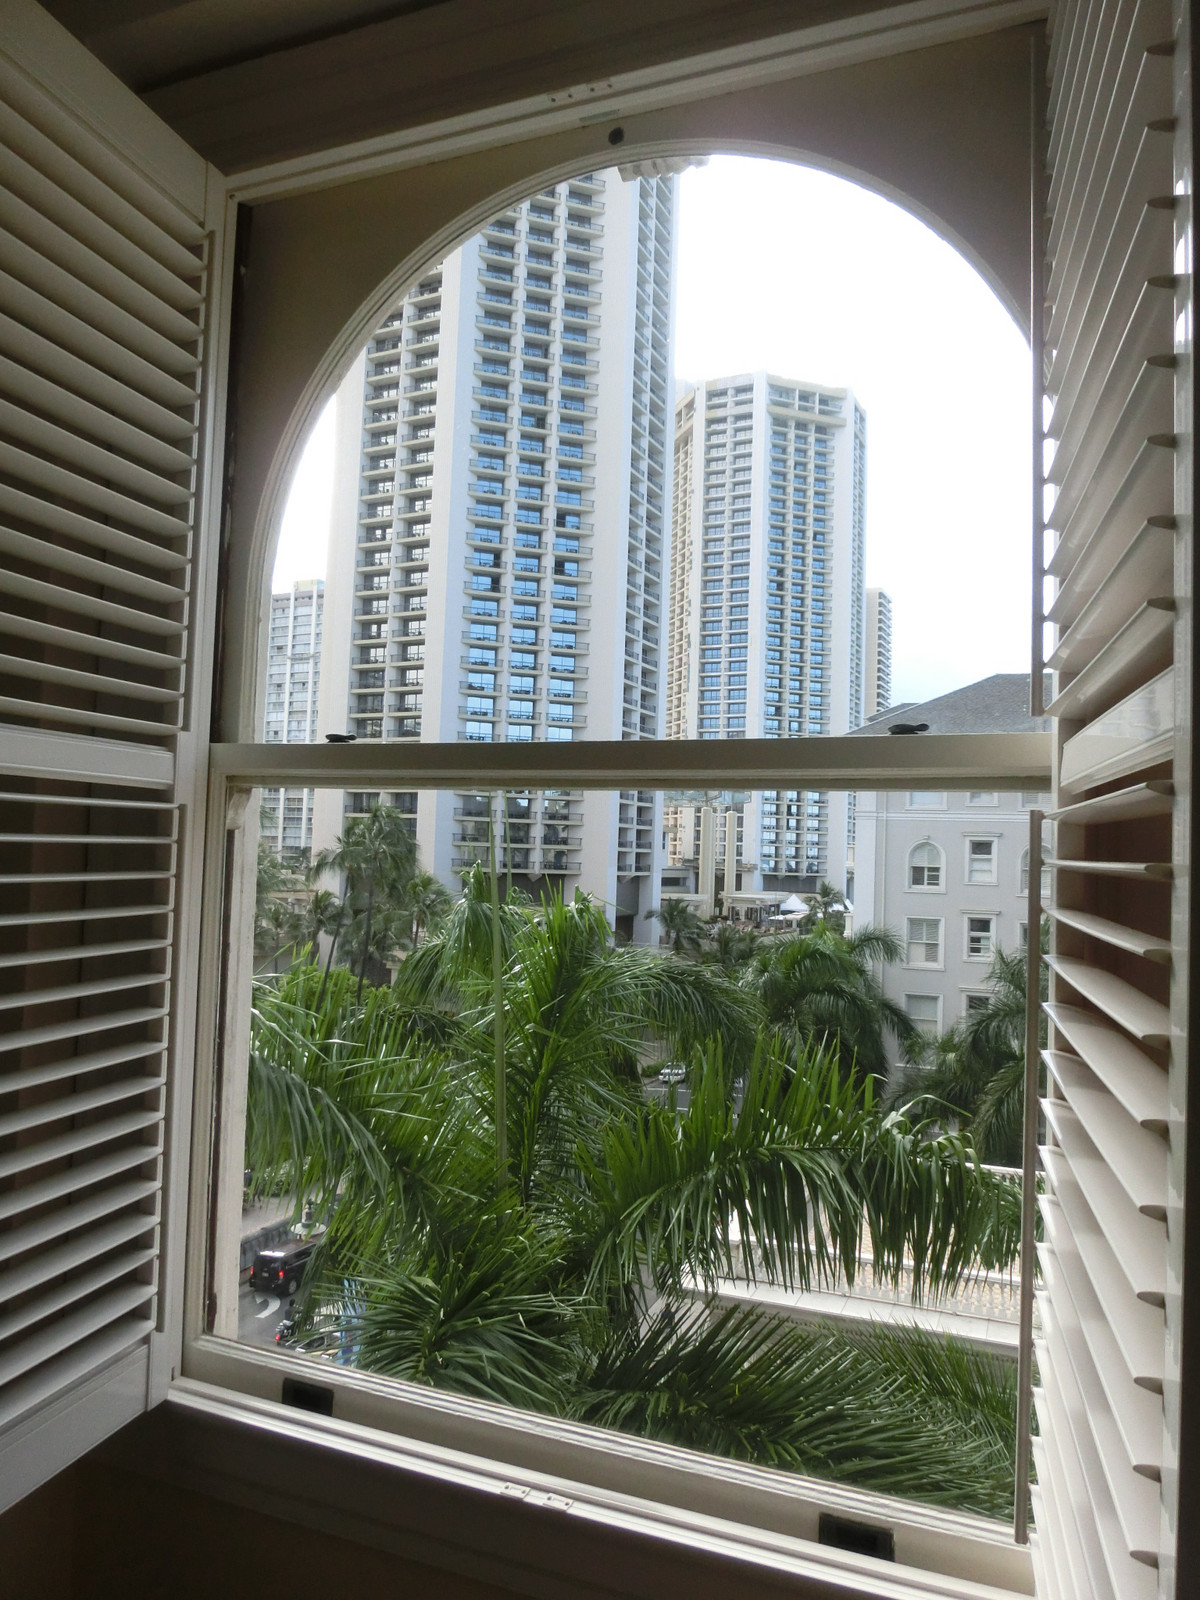 Moana_surfrider_window_view_1